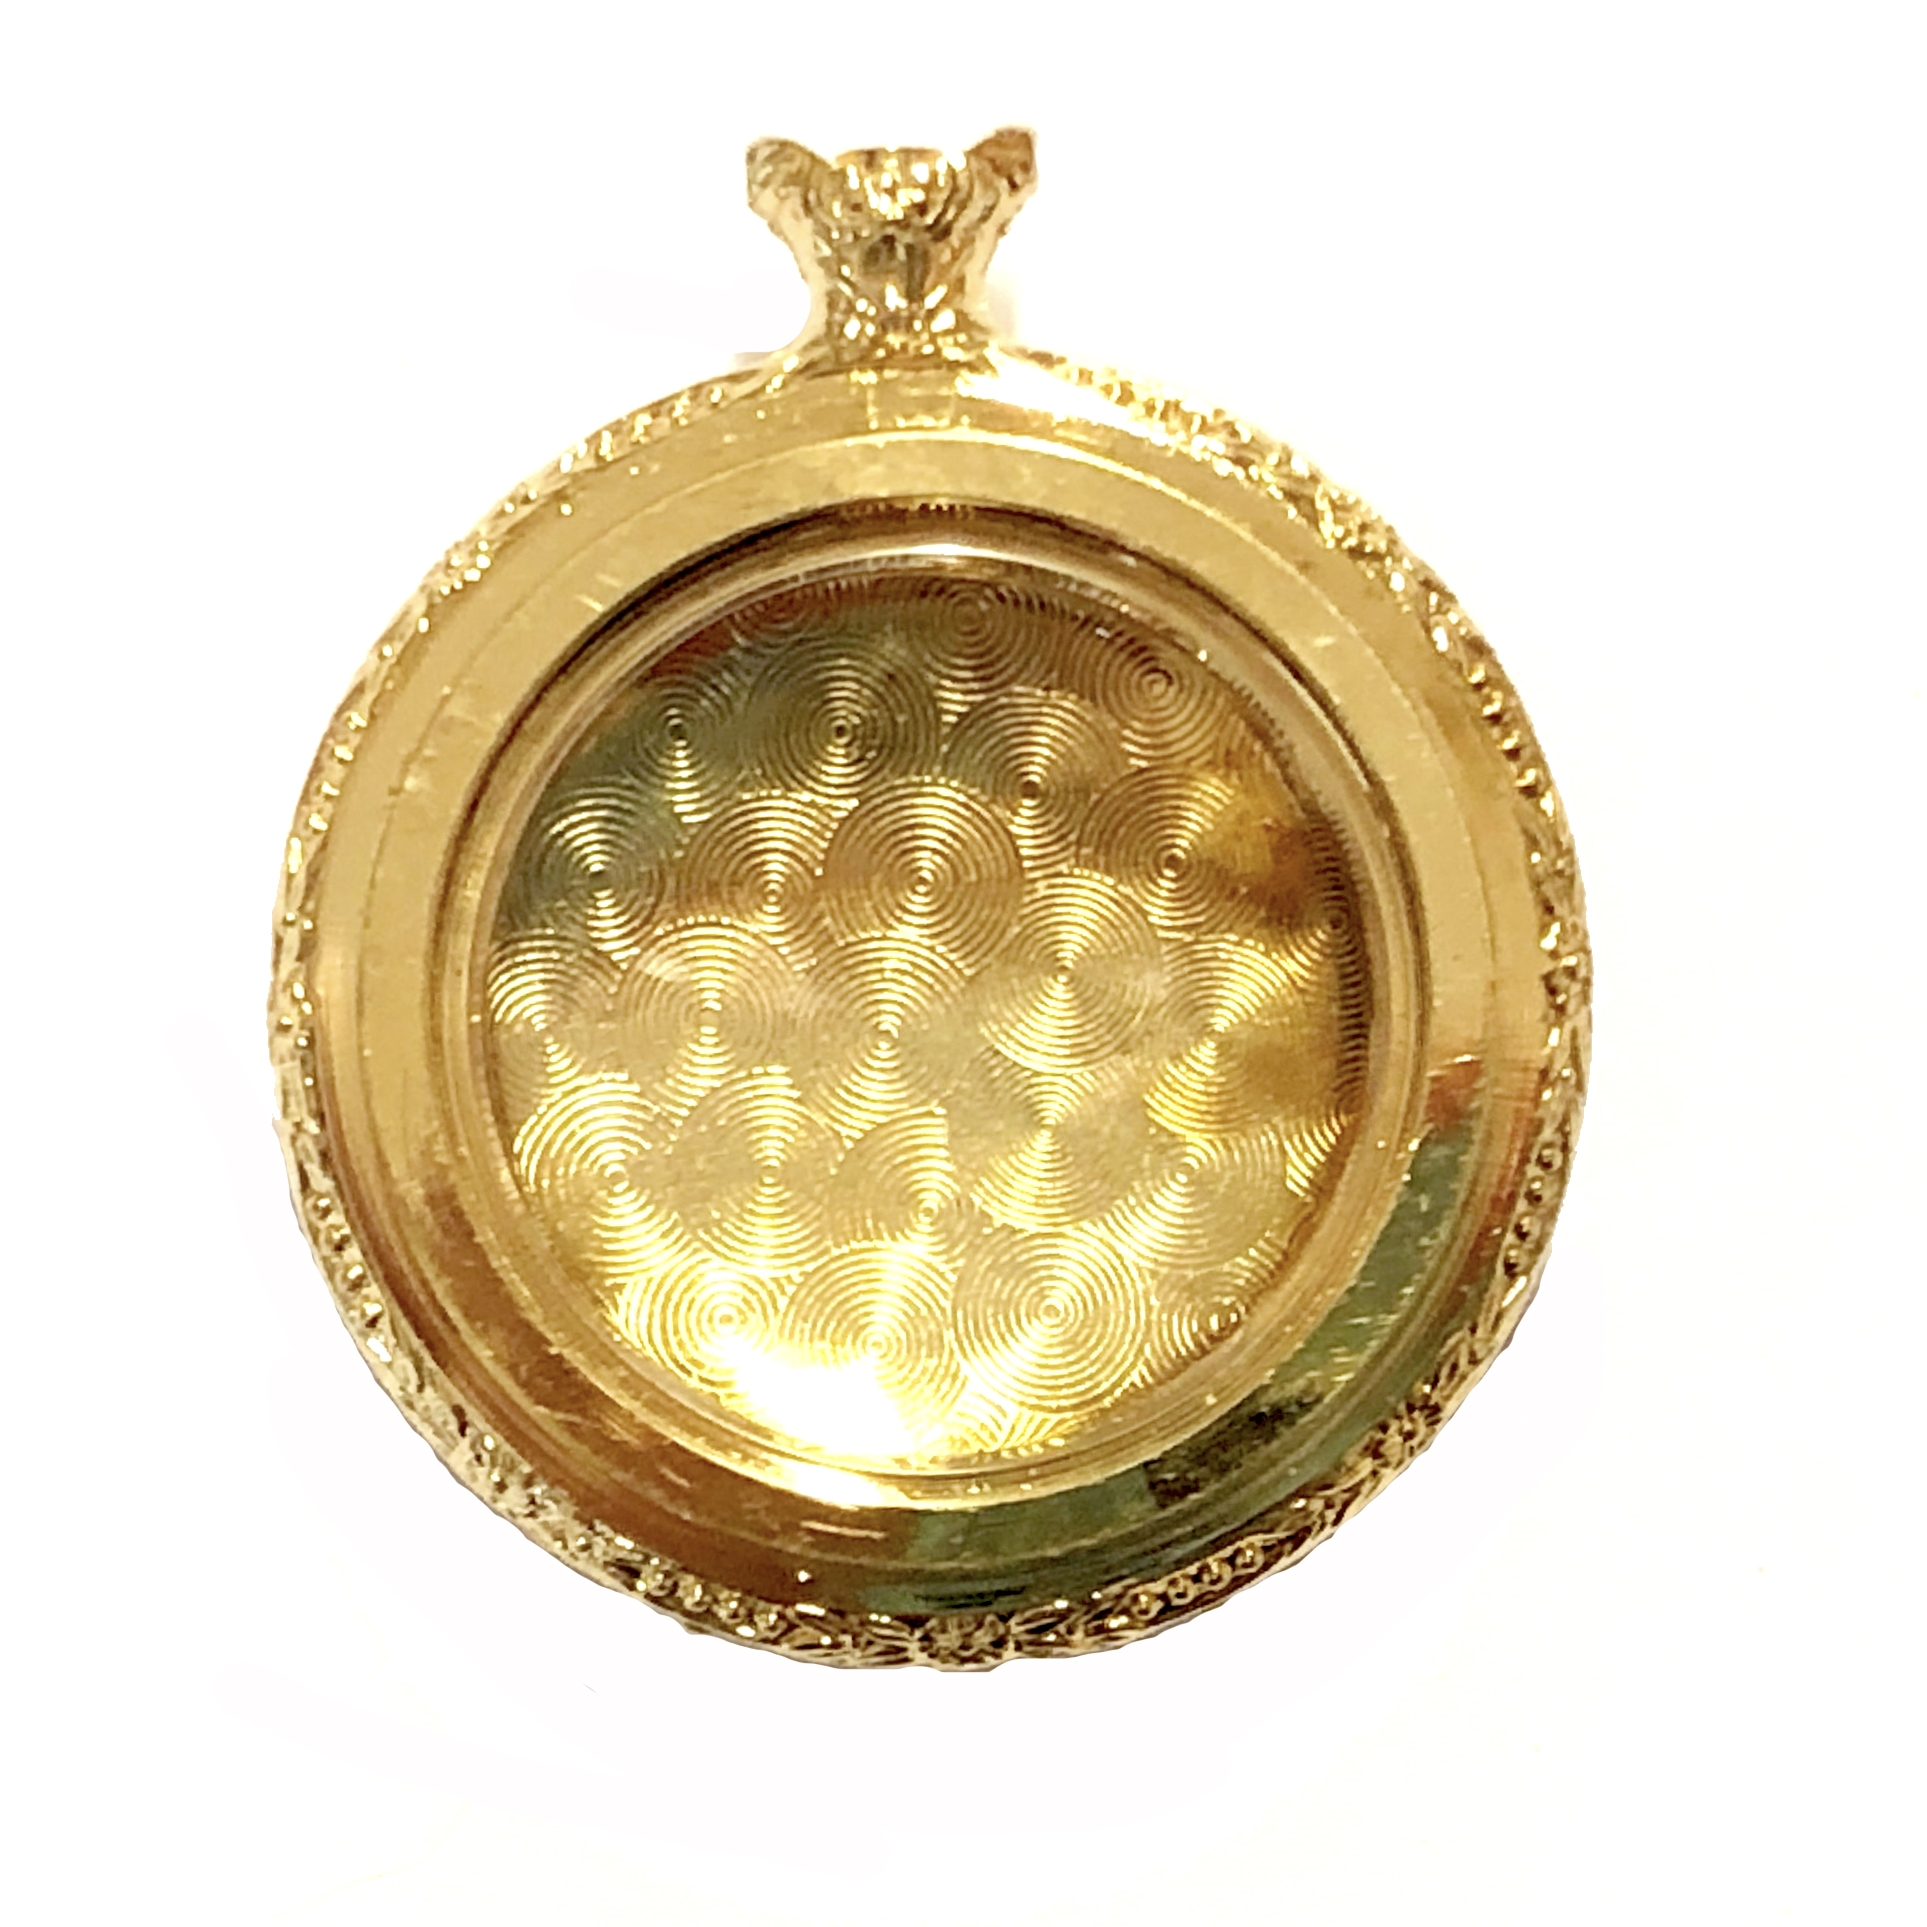 1928 pocket watch case, locket, 09297, gold plated, 40mm, floral motif, vintage watch parts, watch parts, vintage jewelry supplies, jewelry making, B'sue Boutiques, 1928, gold, bezel, watch case, watch bezel,